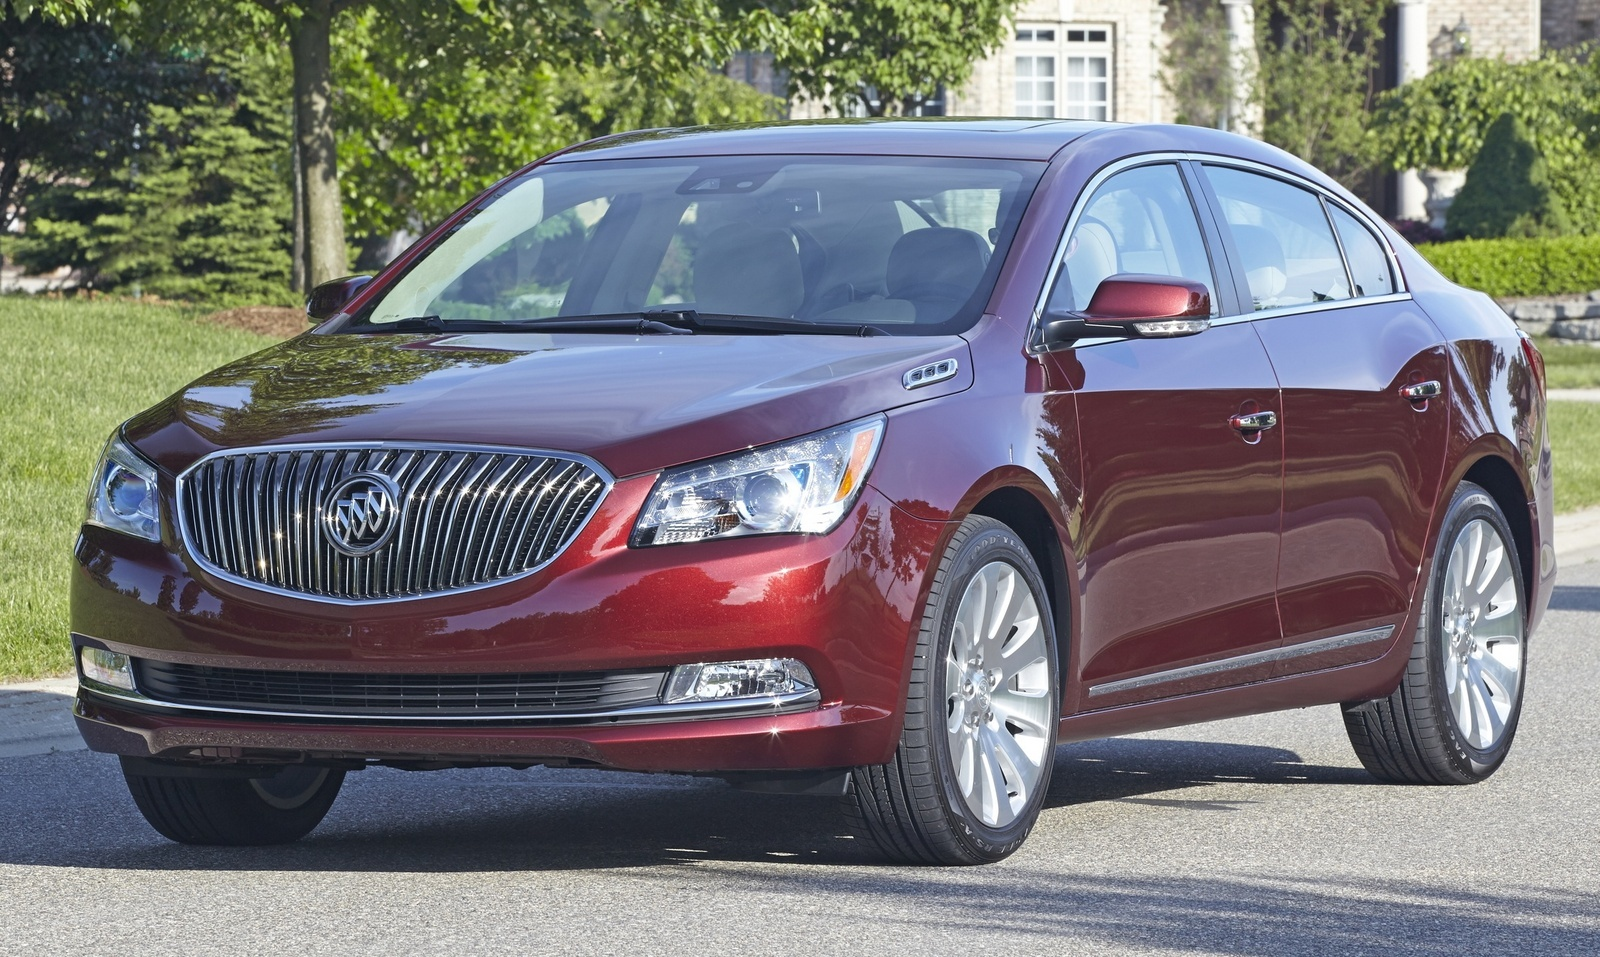 2016 Buick Lacrosse Overview Cargurus 2015 Chevy Truck Paint Colors